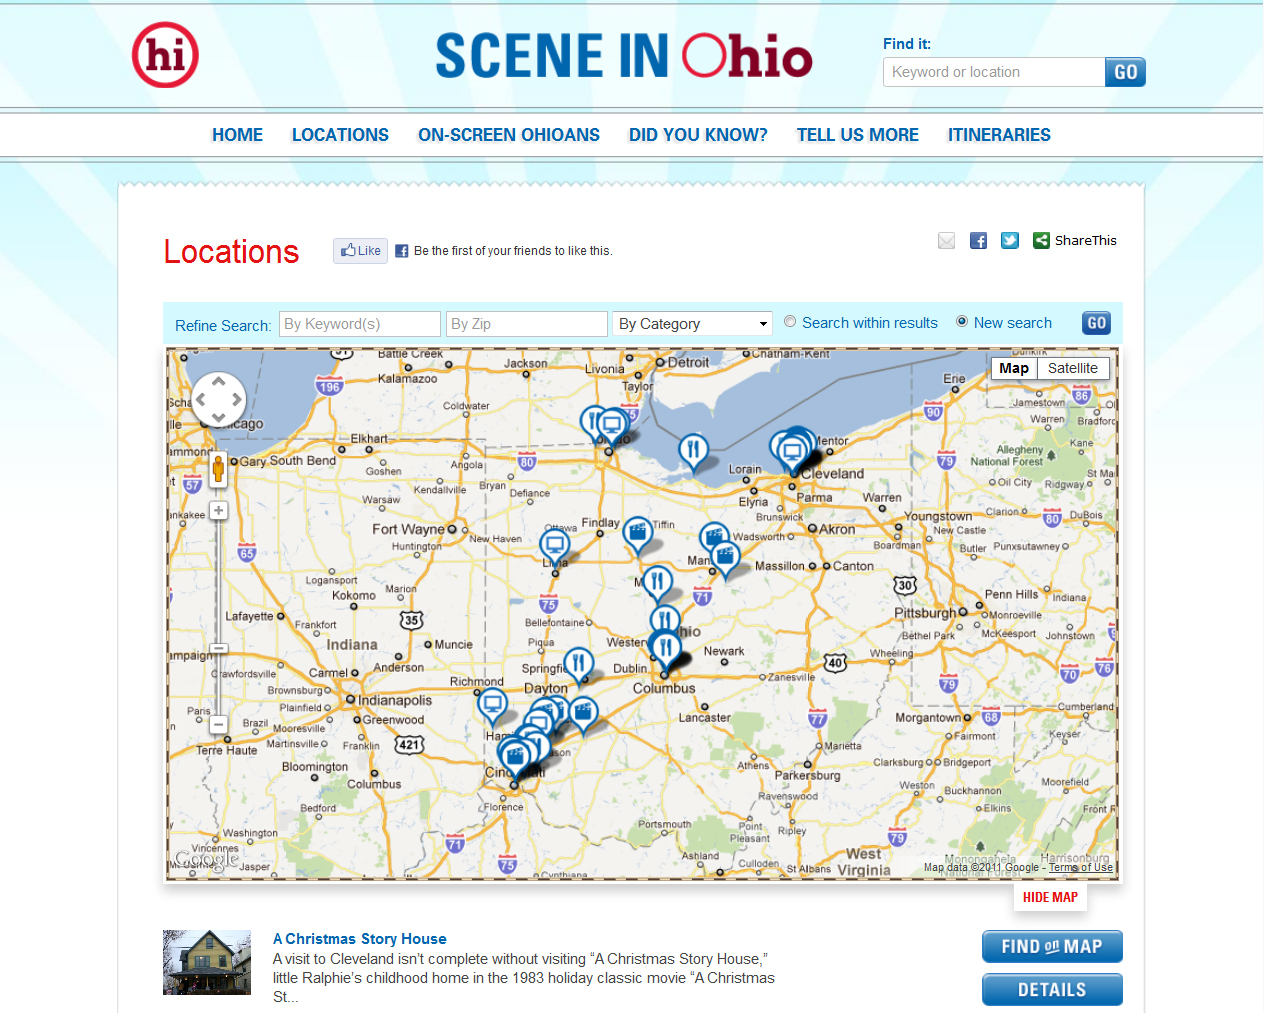 Scene in Ohio Locations